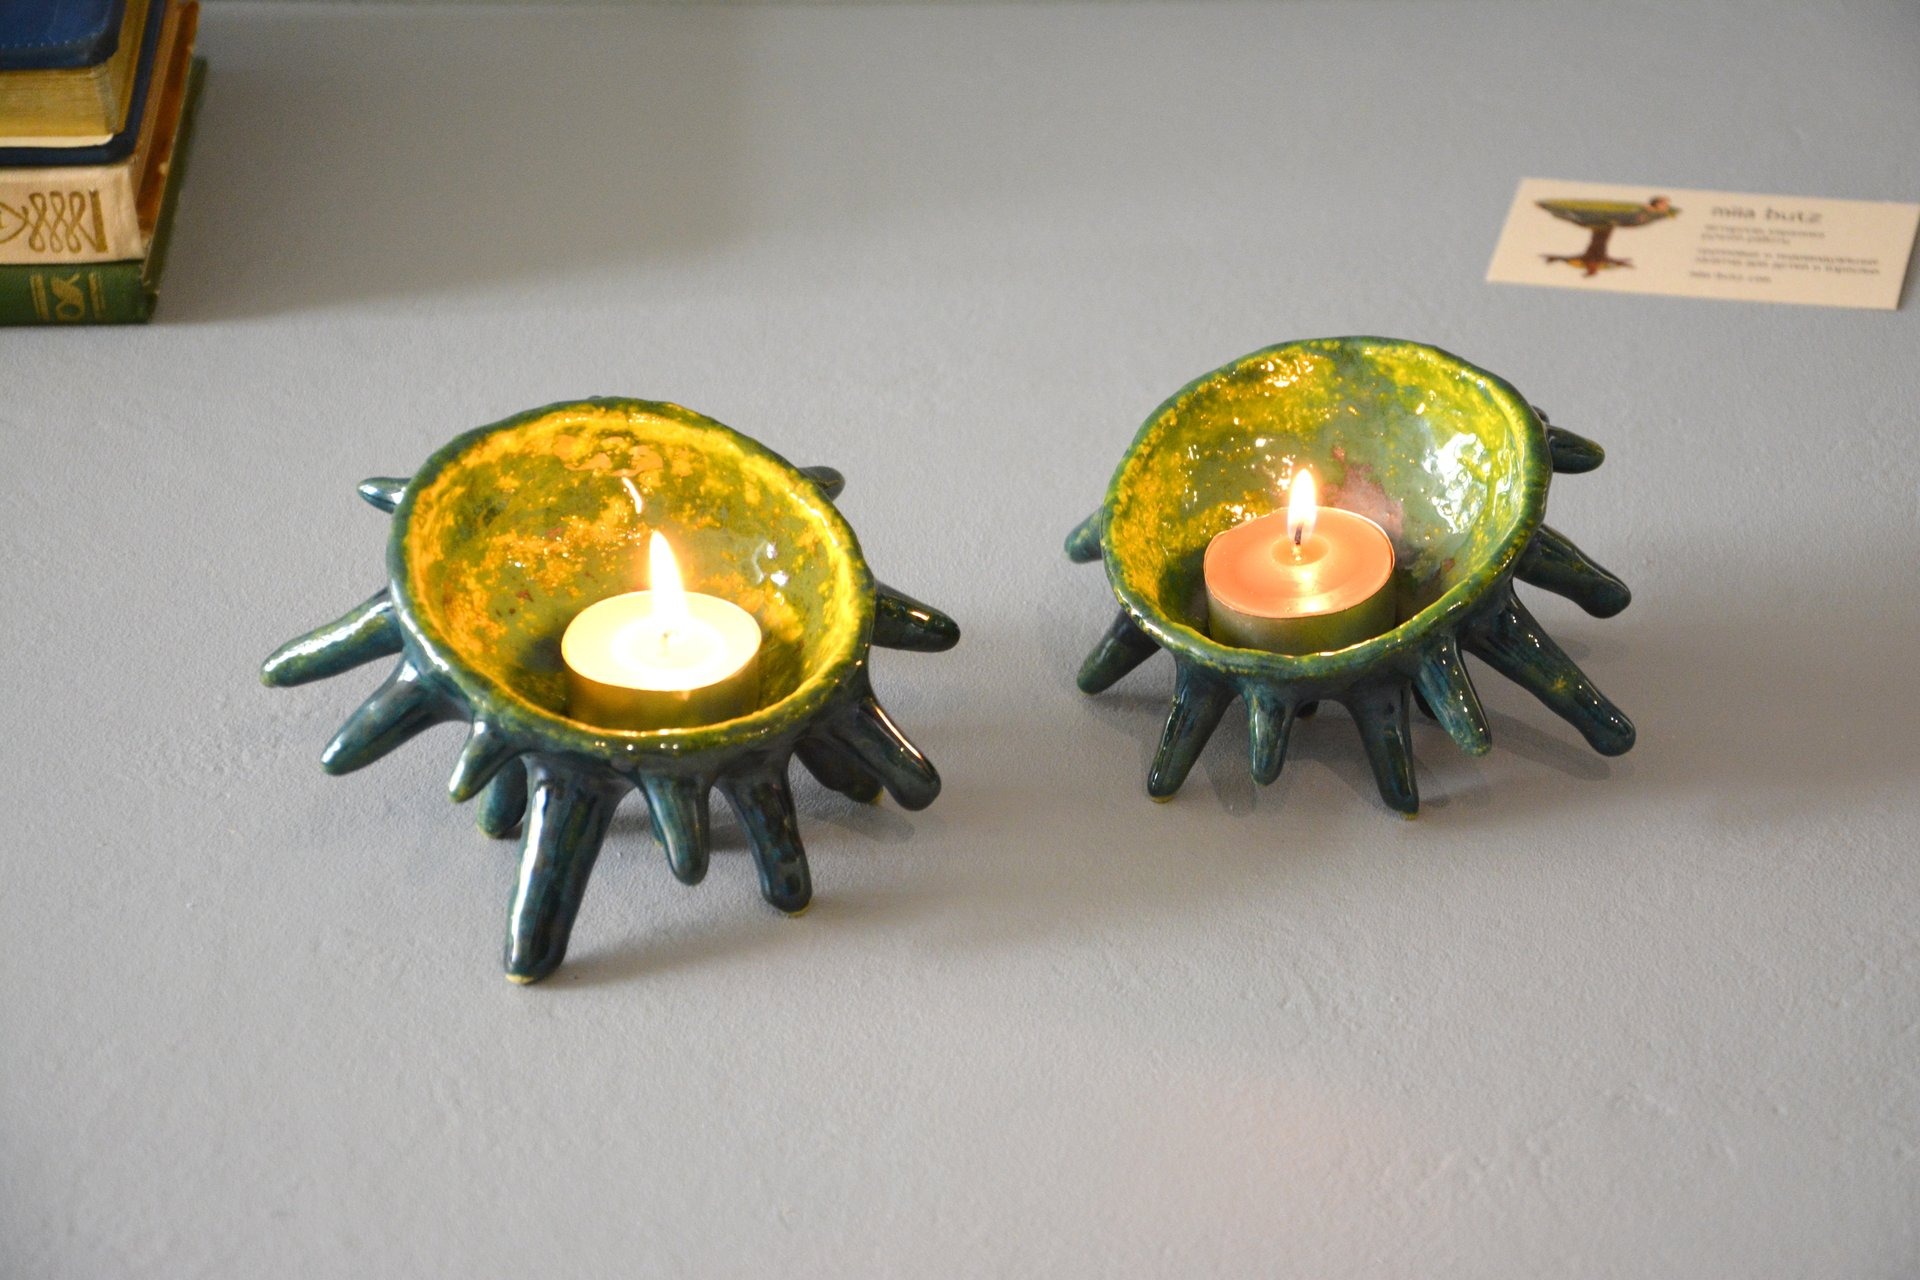 Spikes - Ceramic Candl-holders, diameter - 10 cm, photo 6 of 7.